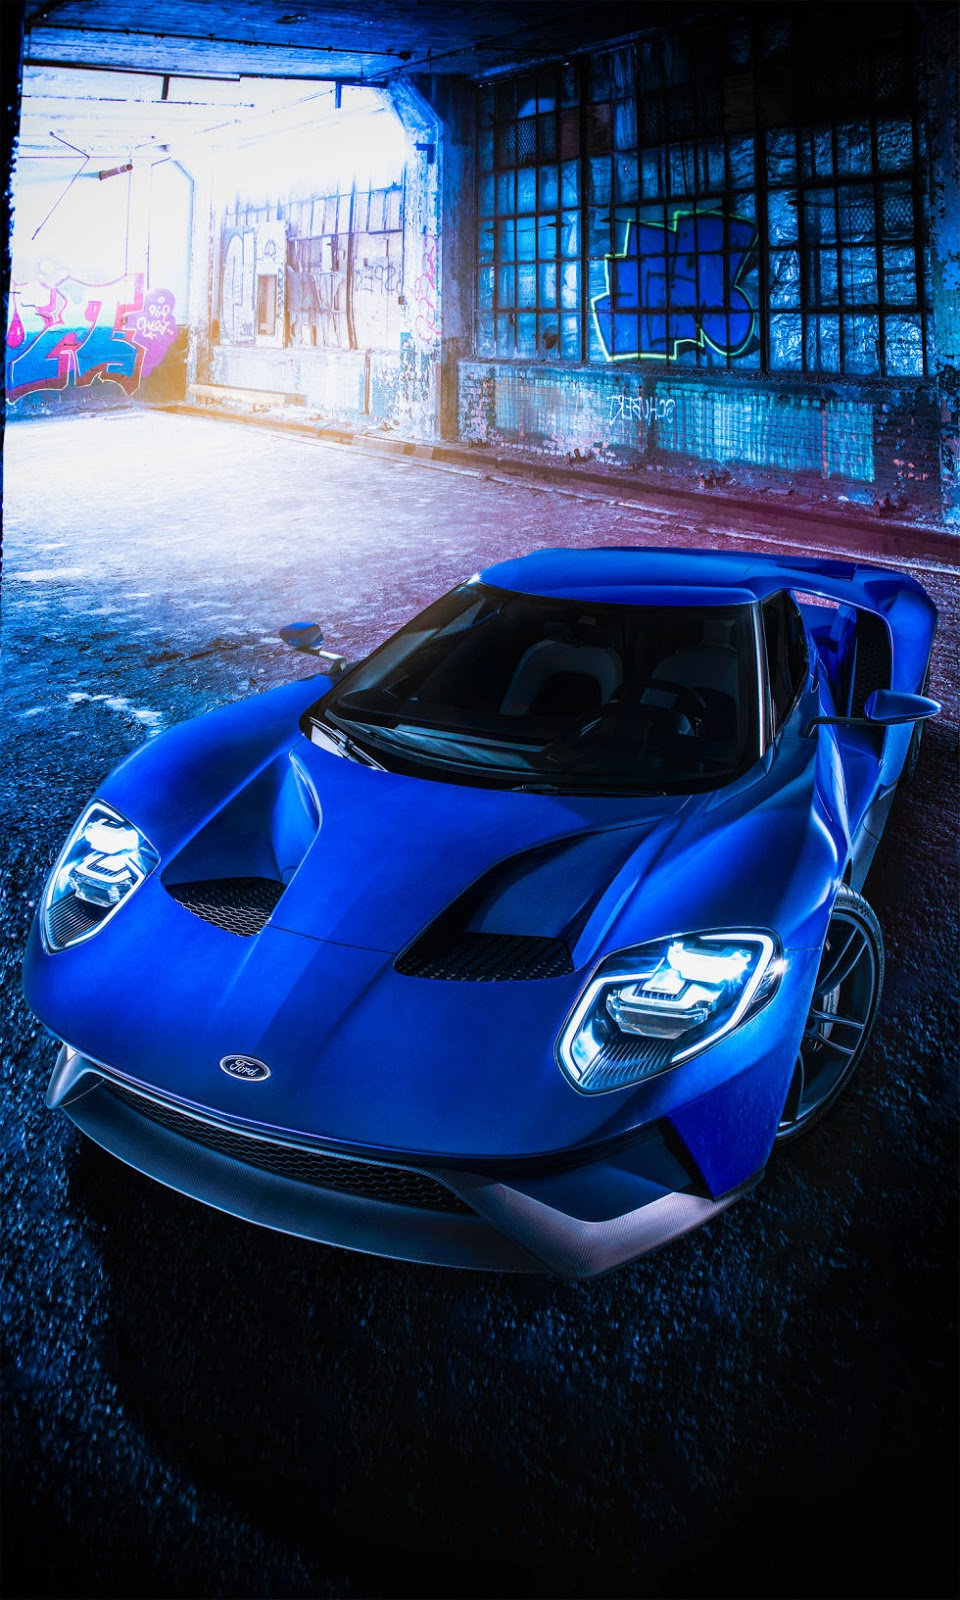 Ford gt 2016 blue garage sportcar wallpaper